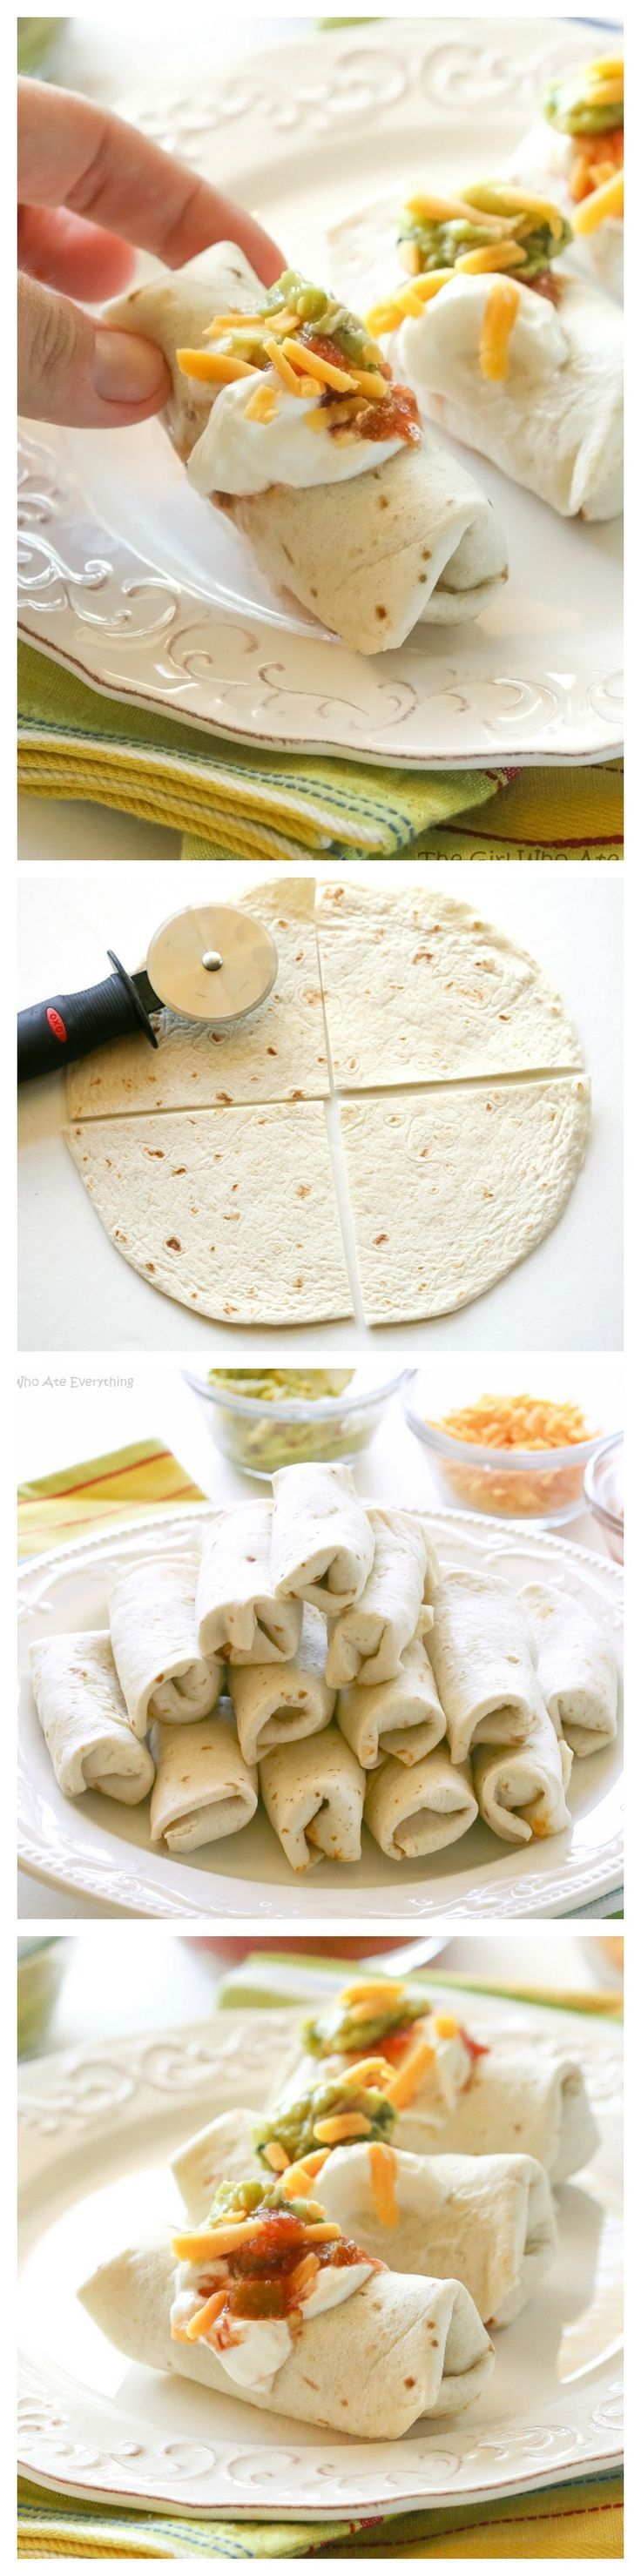 These Mini Burritos are filled with seasoned meat, beans, and cheese. Serve them as an appetizer and let your guests top their own. http://the-girl-who-ate-everything.com